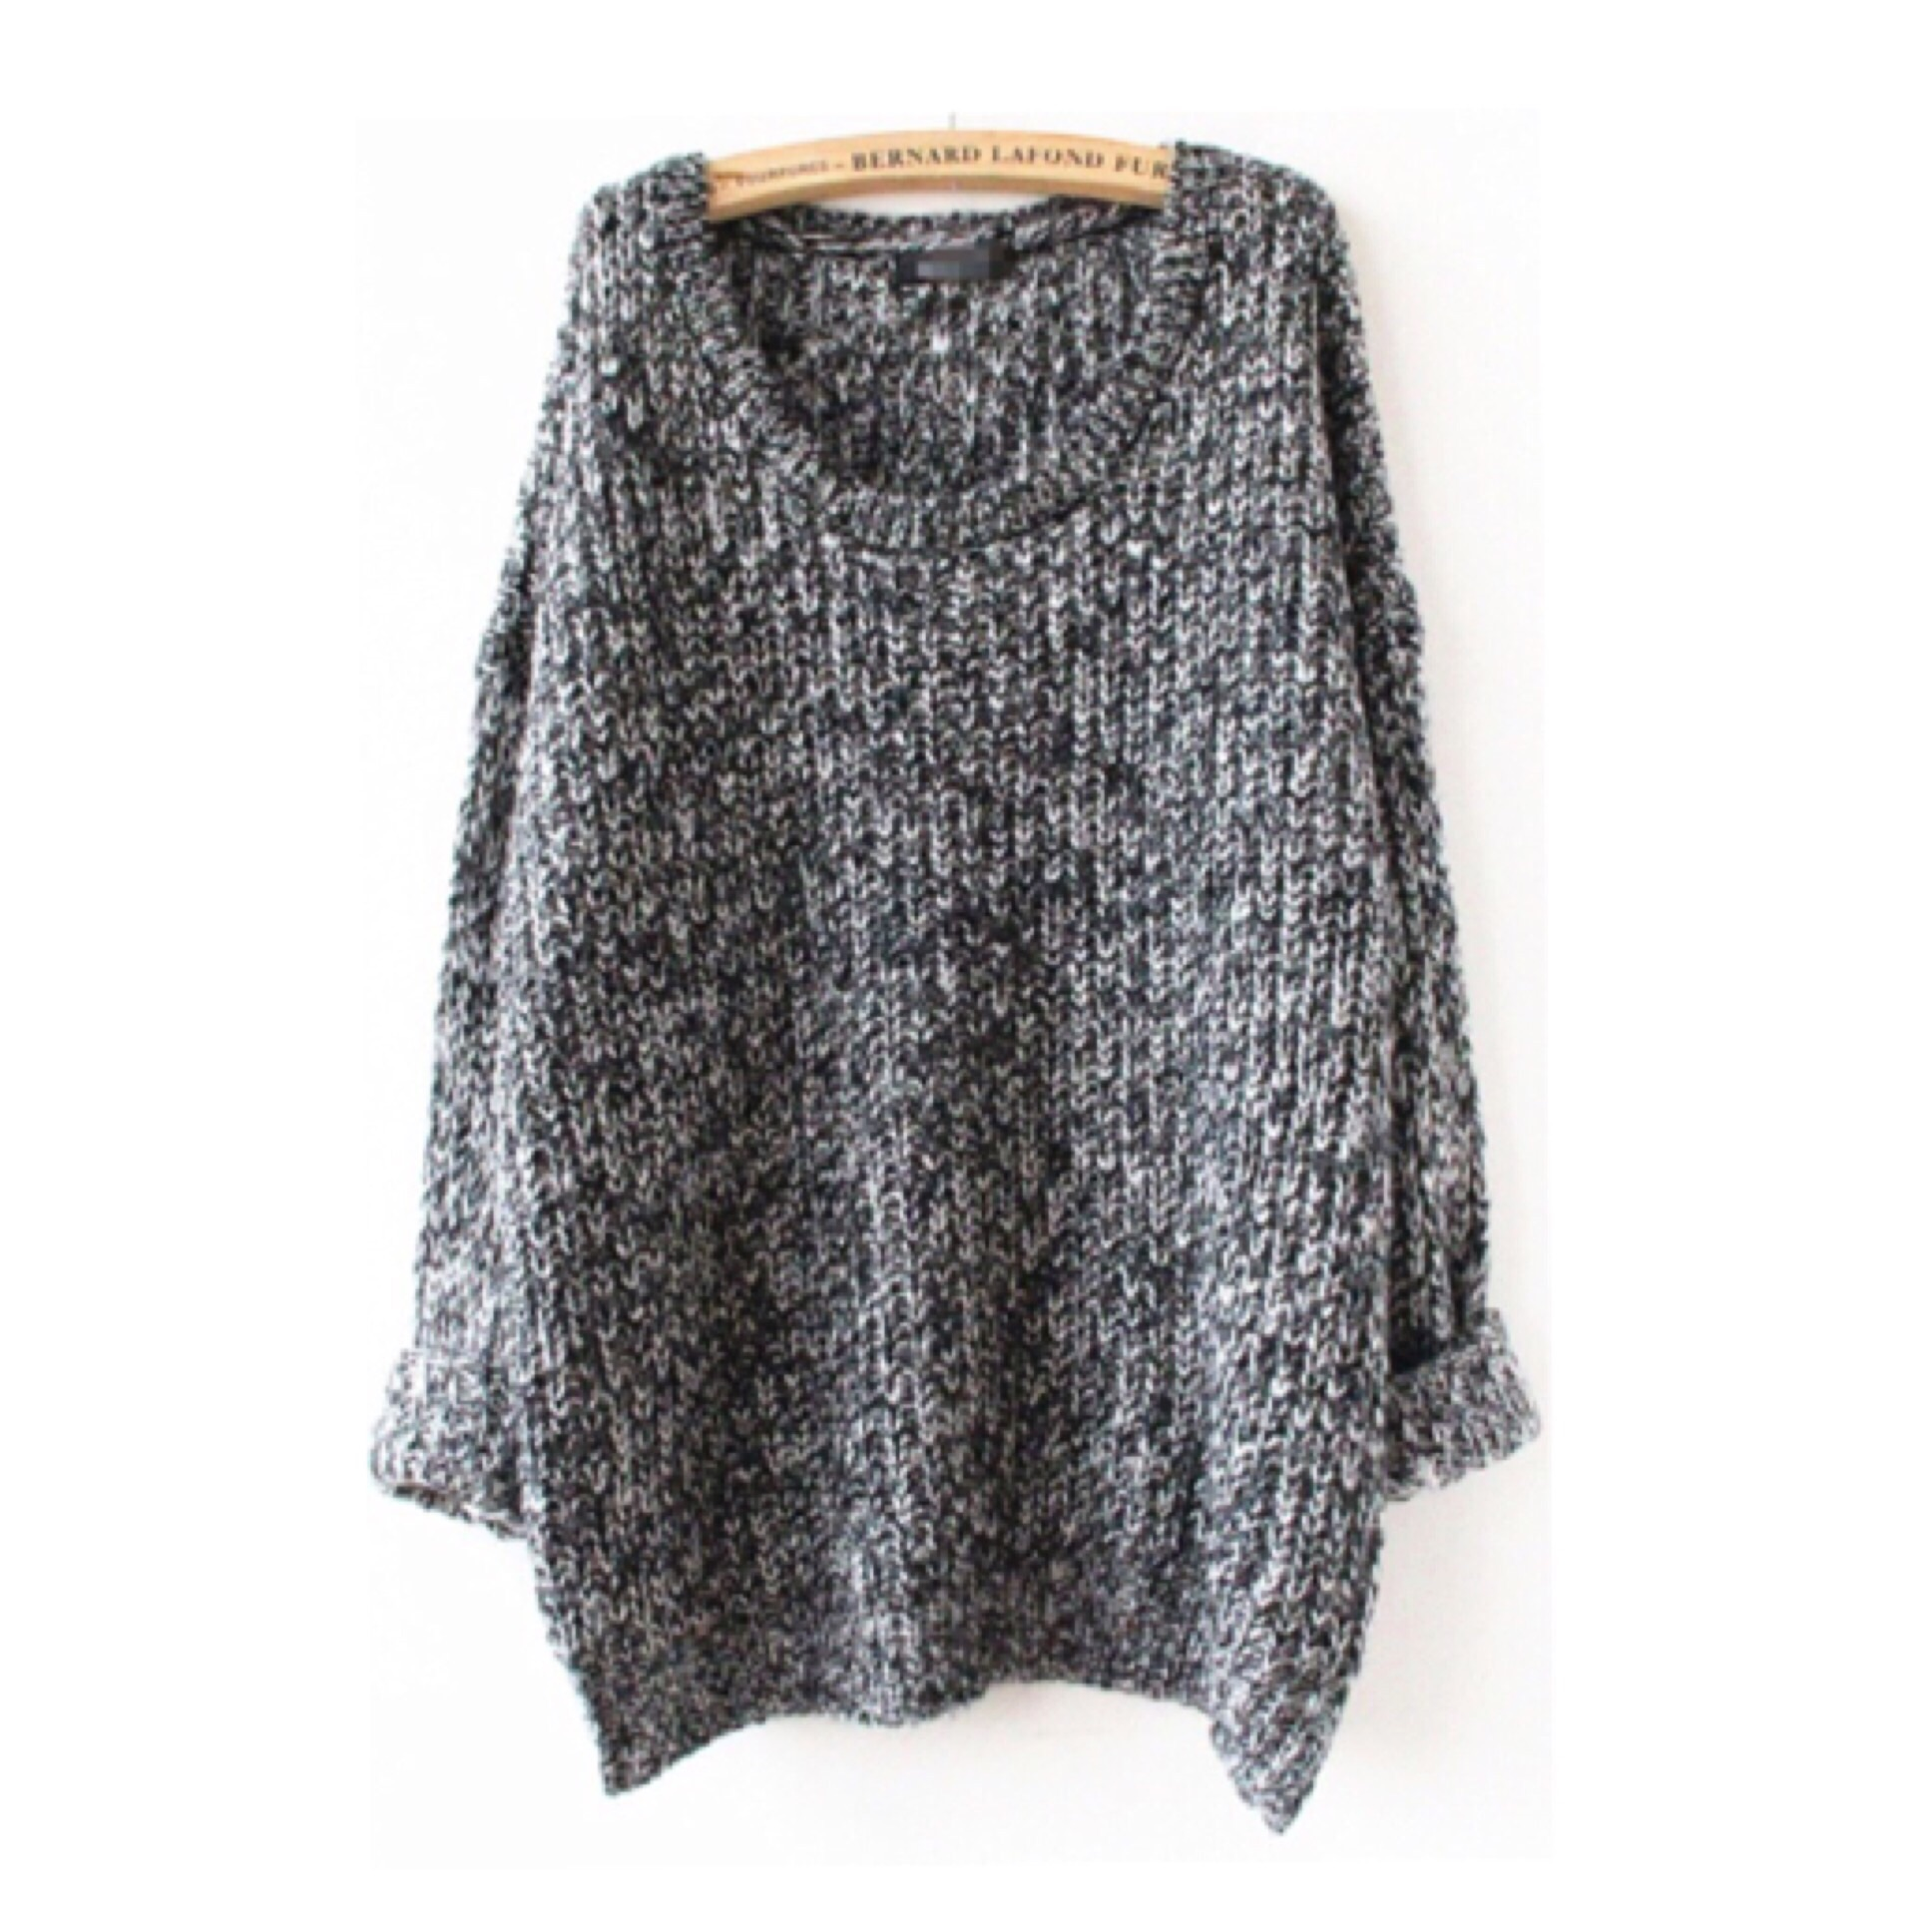 Grey sweater oversized knit pullover top from doublelw on storenvy